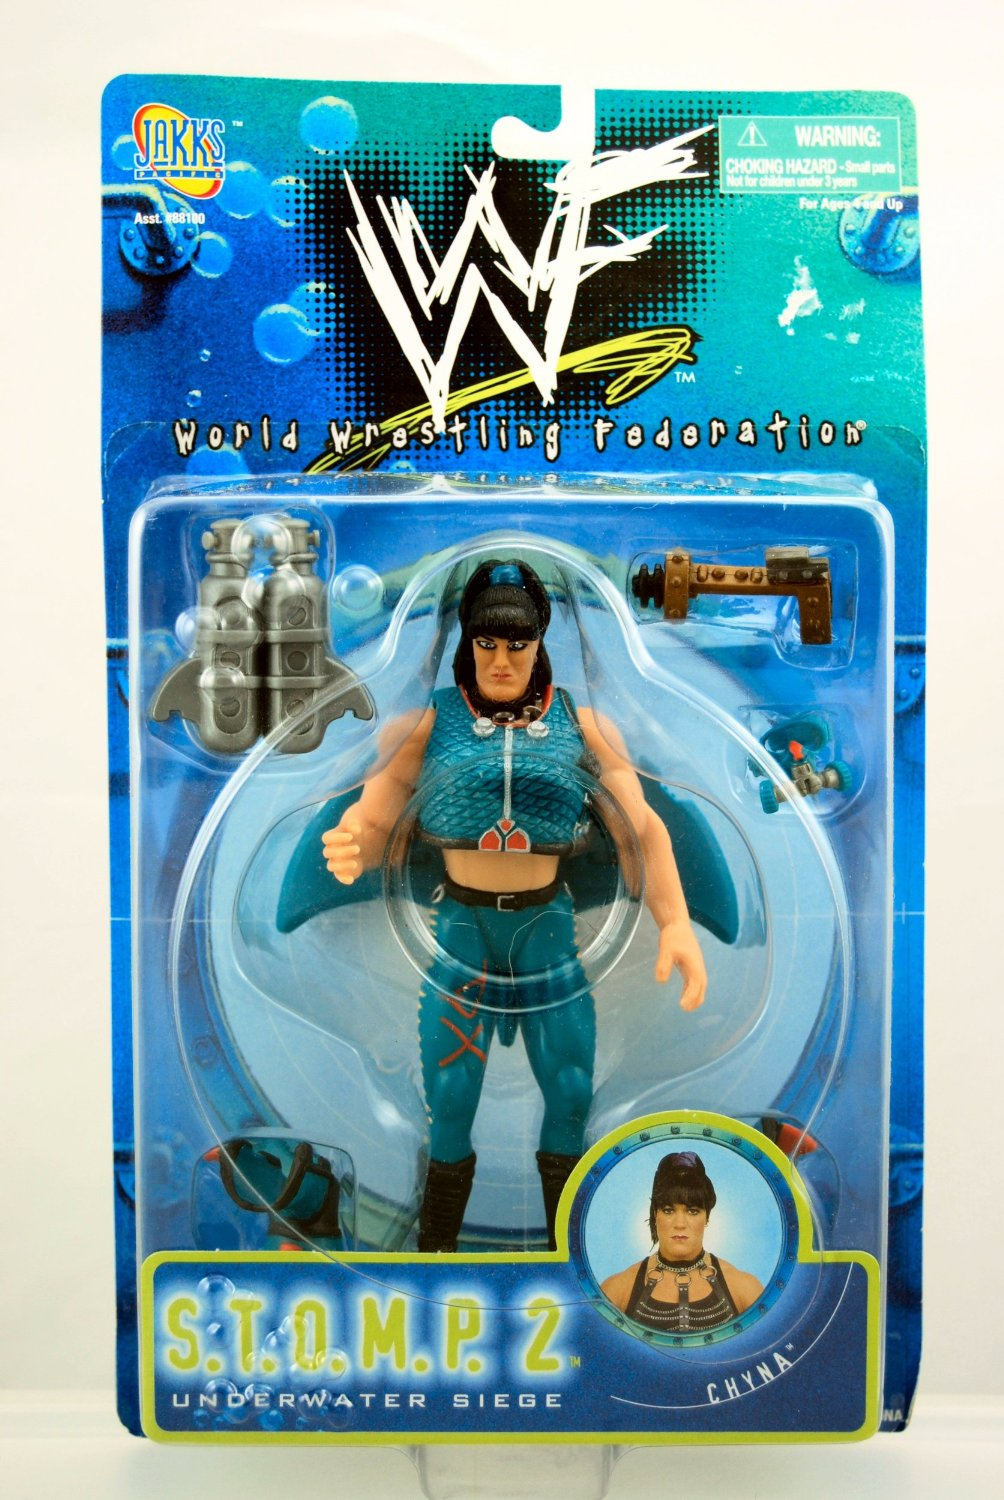 WWF Chyna Underwater Seige S.T.O.M.P figure